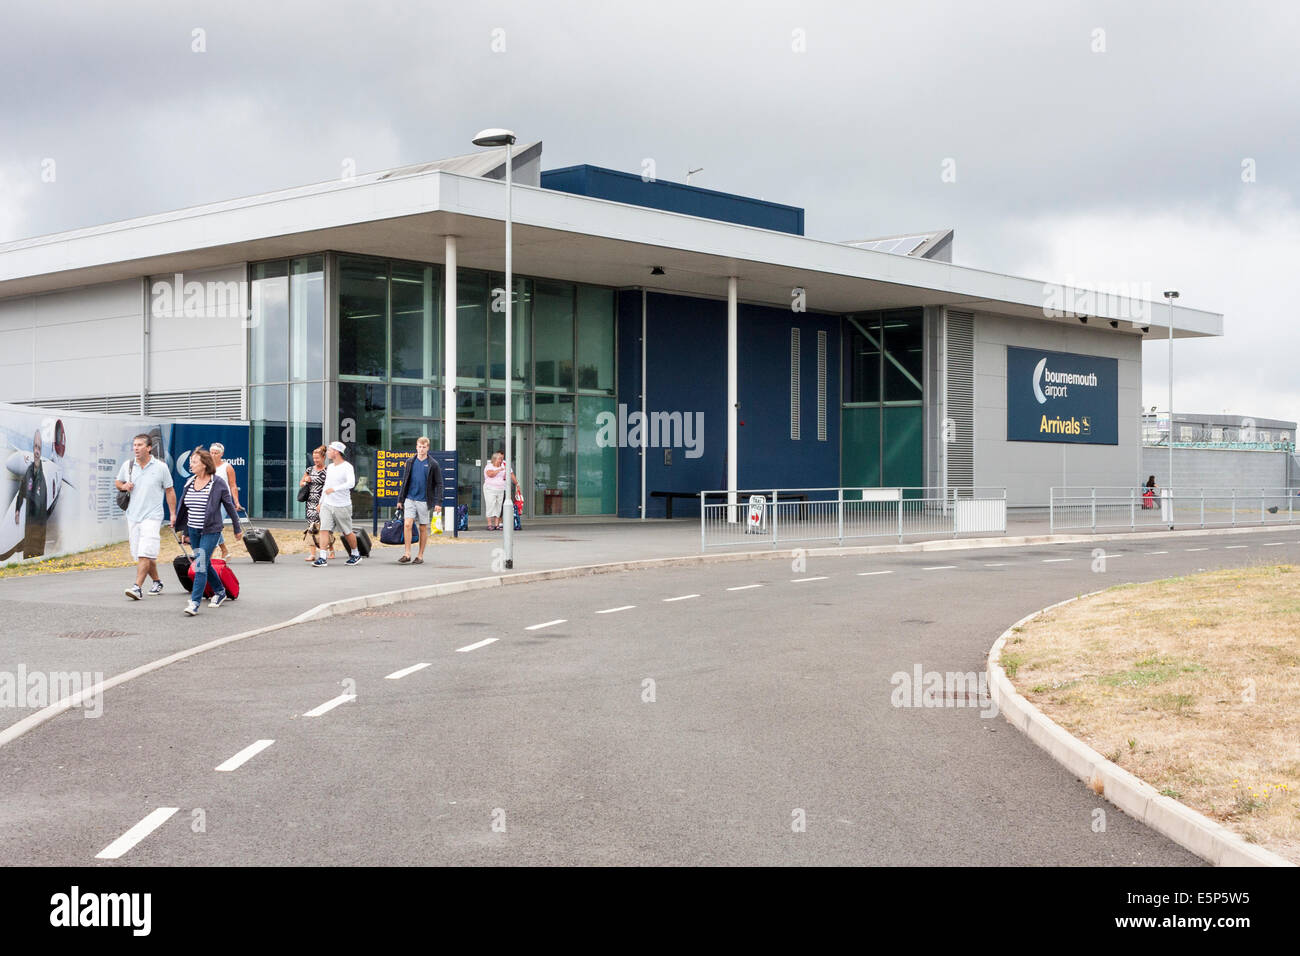 Bournemouth Airport arrivals terminal - Stock Image